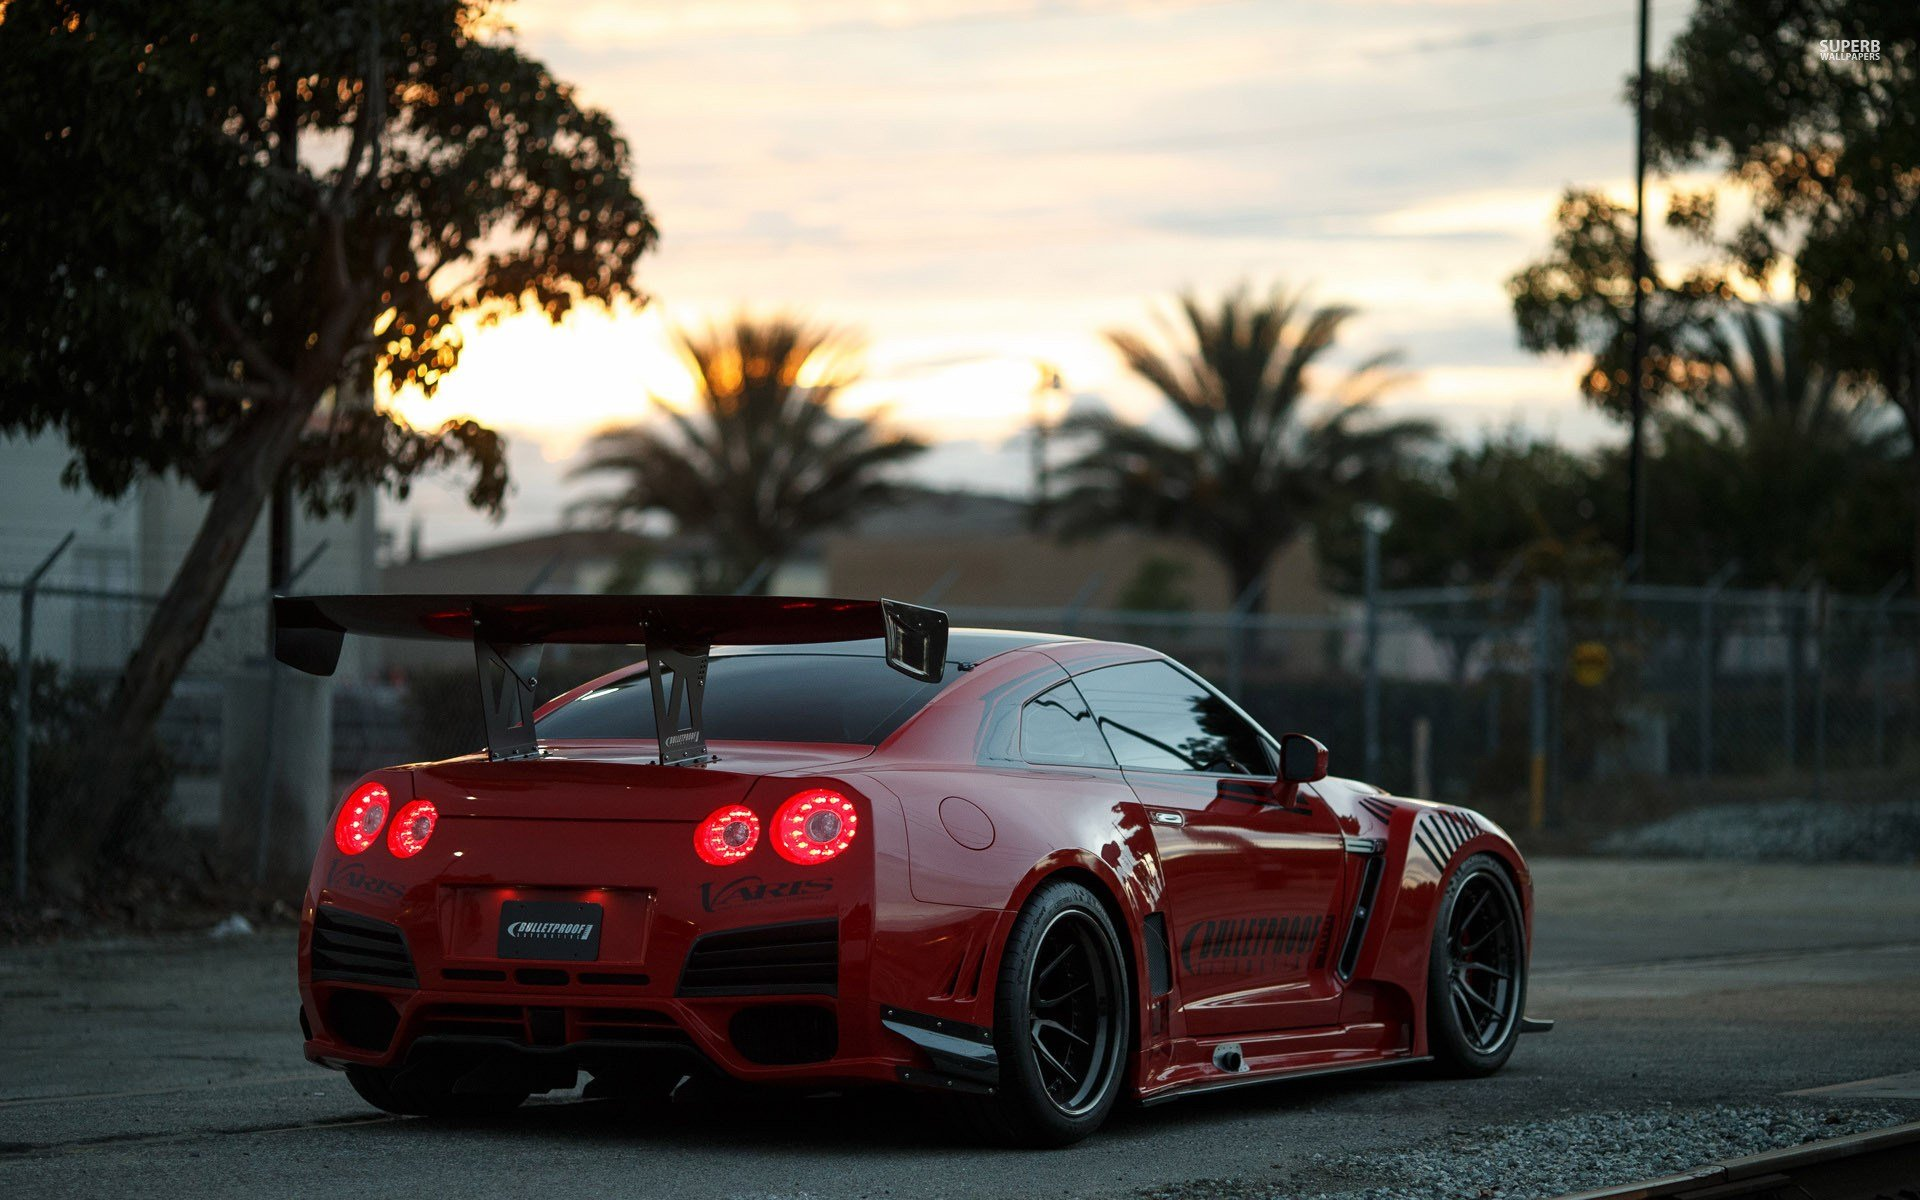 Latest Nissan Gtr Wallpaper ·① Wallpapertag Free Download